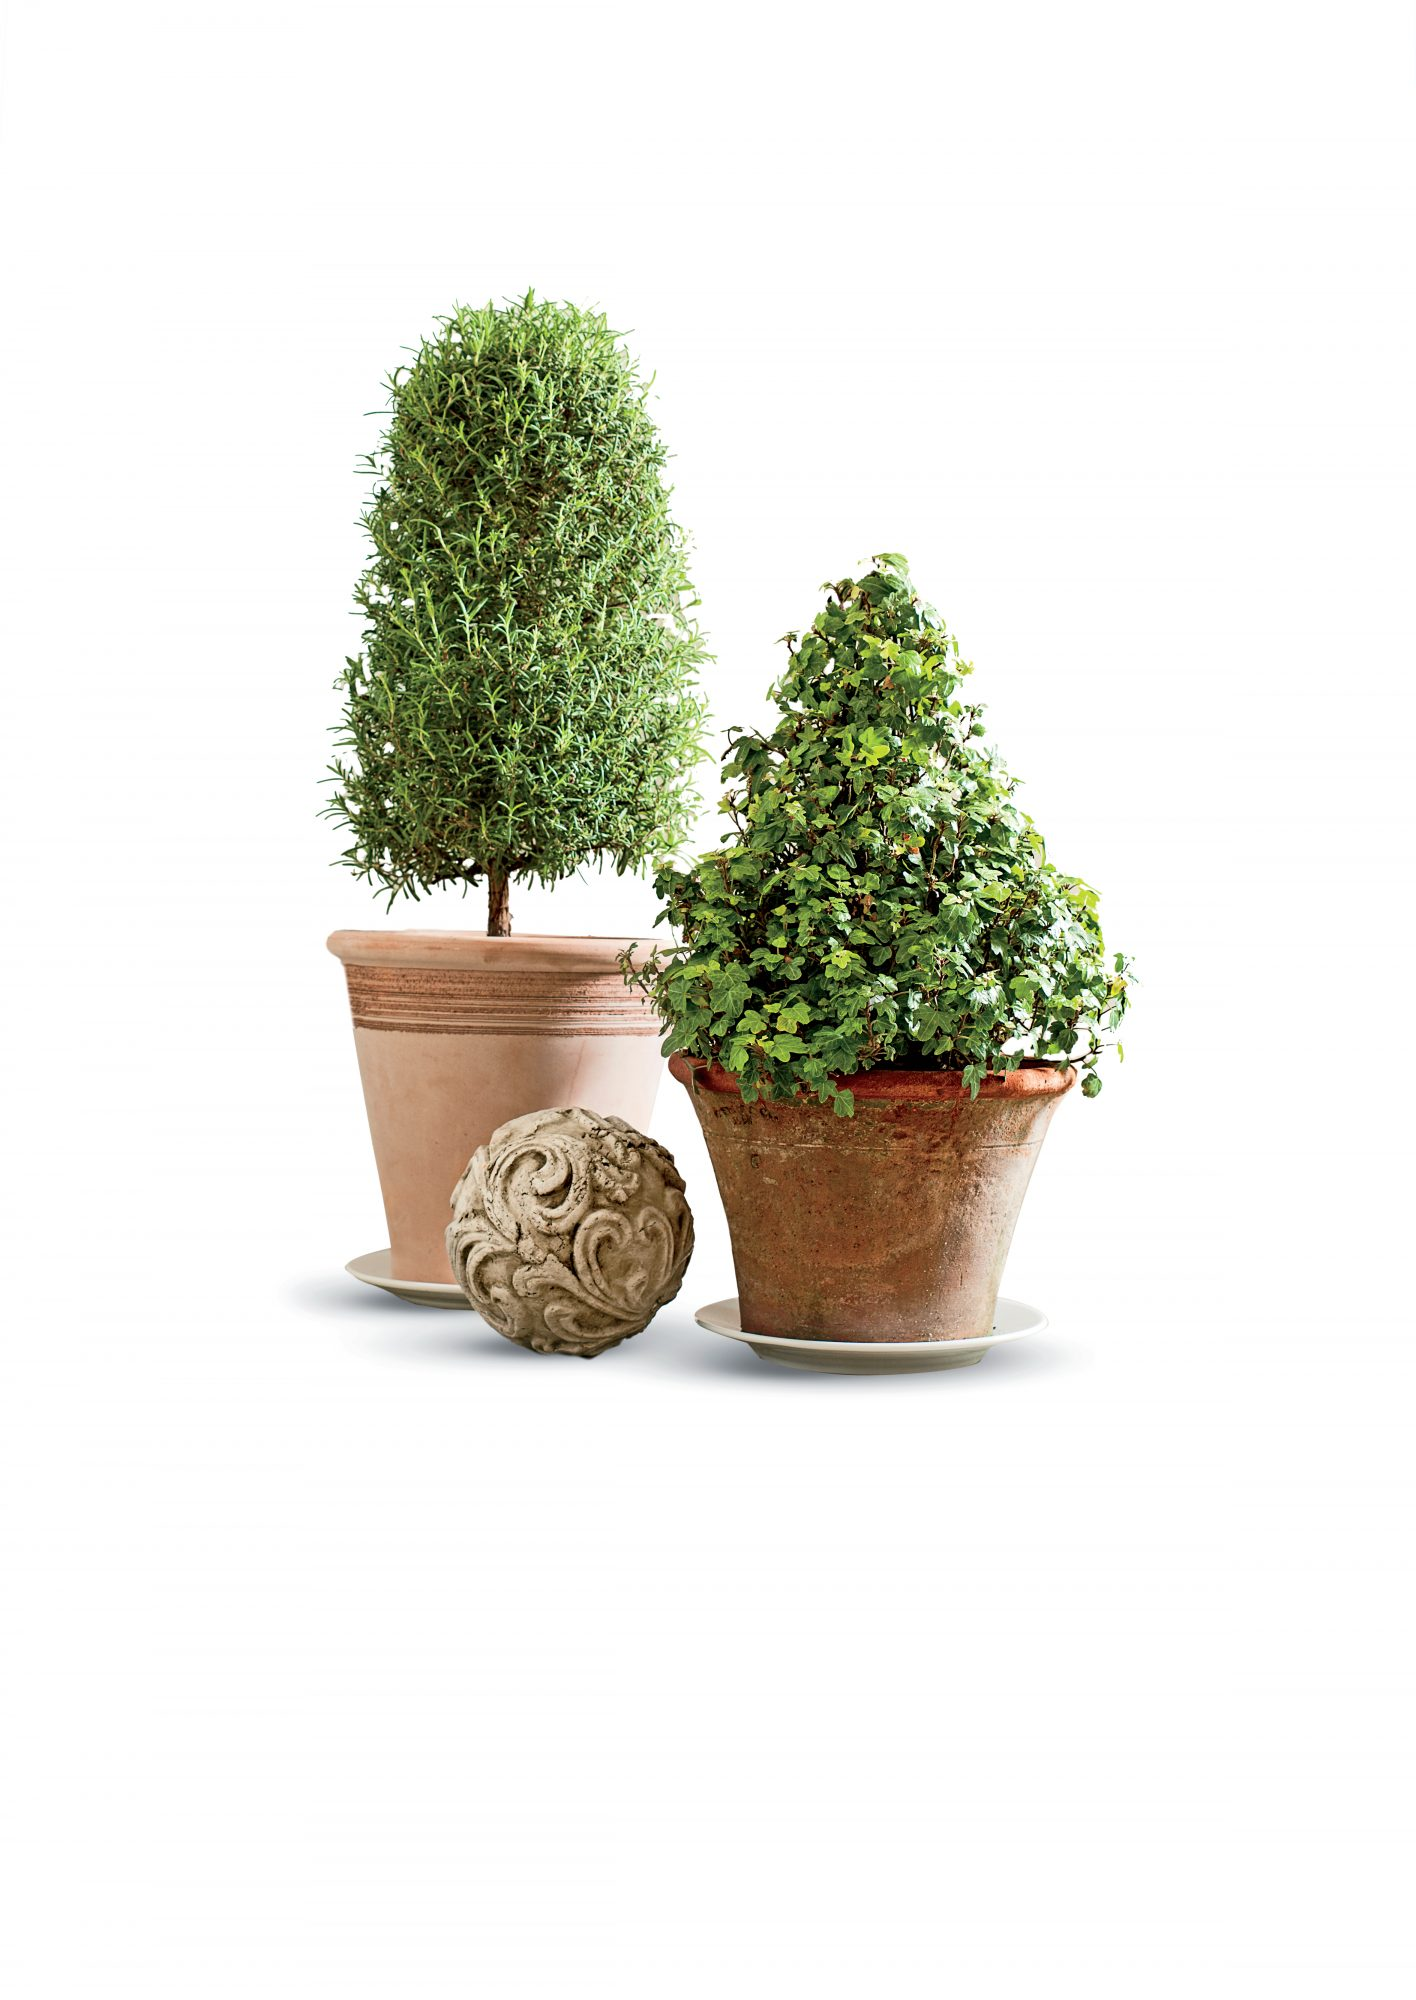 Try a Rosemary Topiary